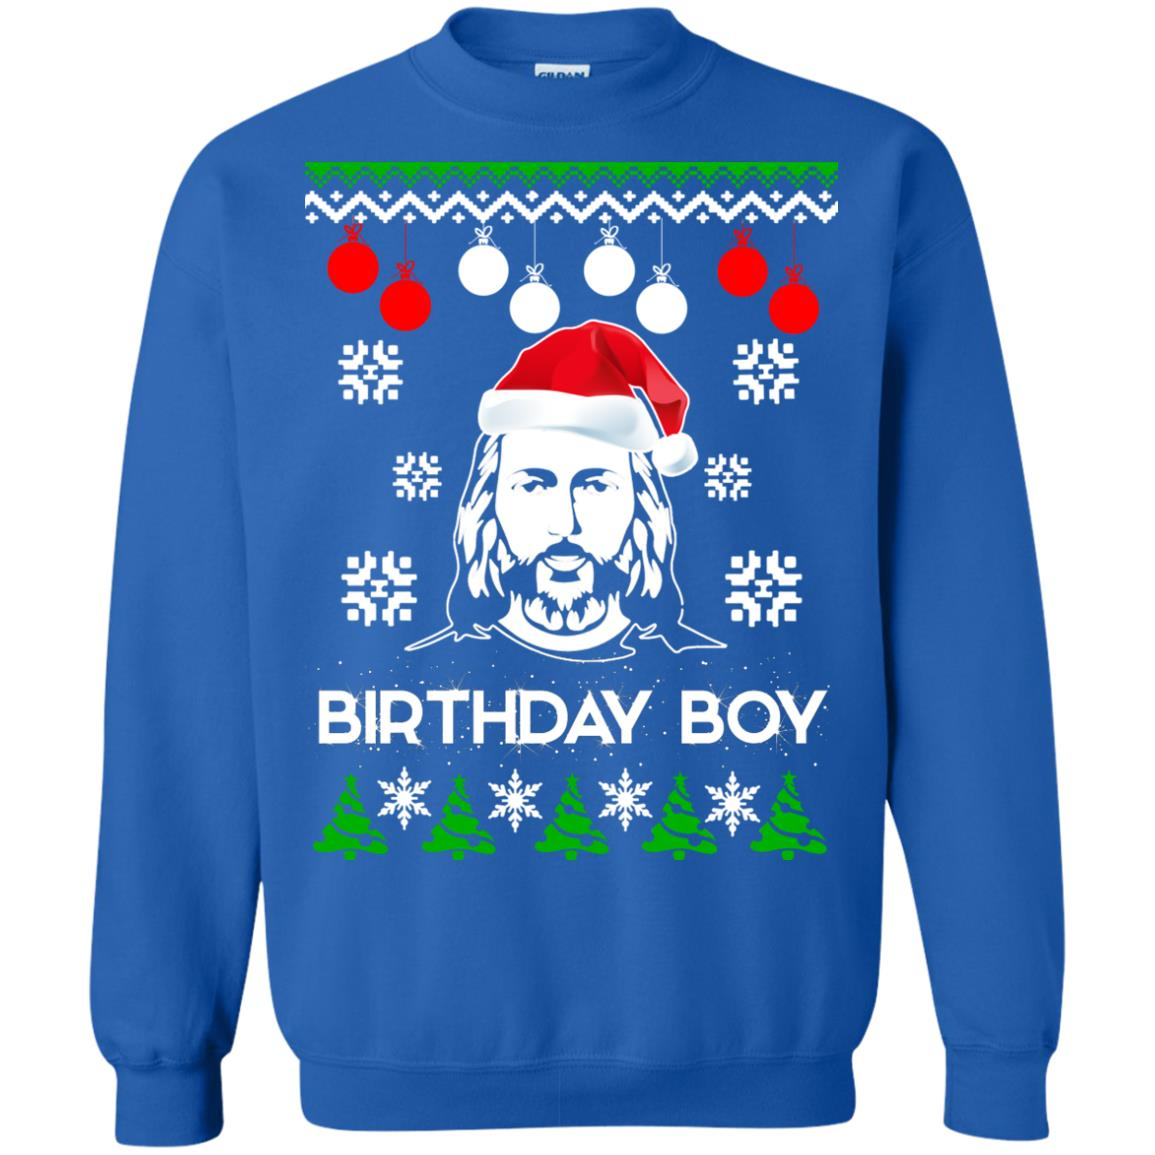 Jesus Birthday Boy Ugly Christmas Sweater, Crewneck Sweatshirt ...